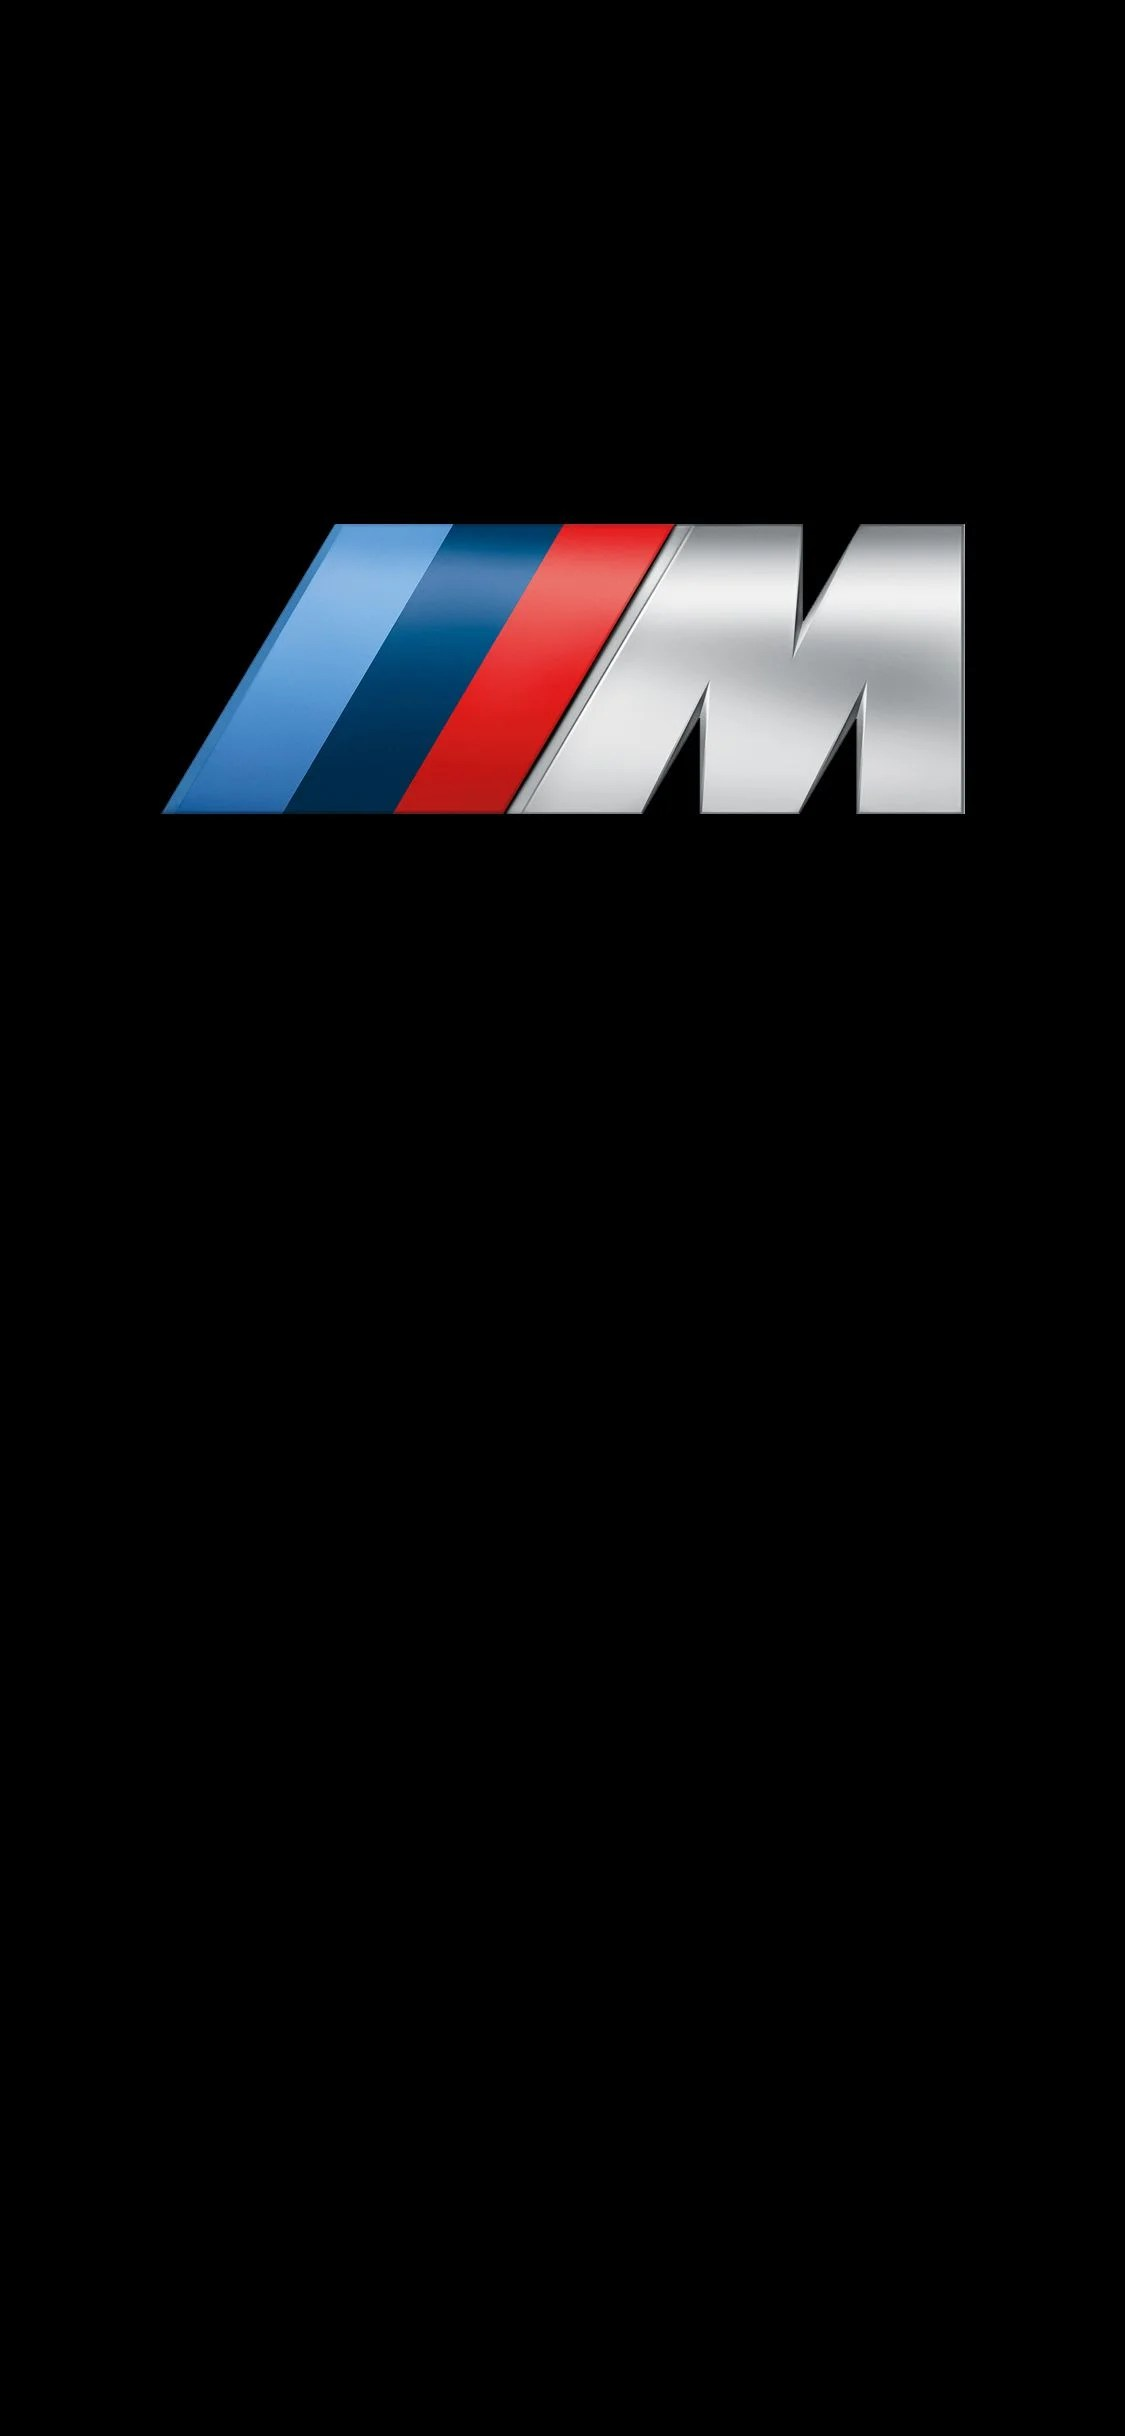 Bmw M4 Logo : Wallpapers, Backgrounds, WallpaperAccess